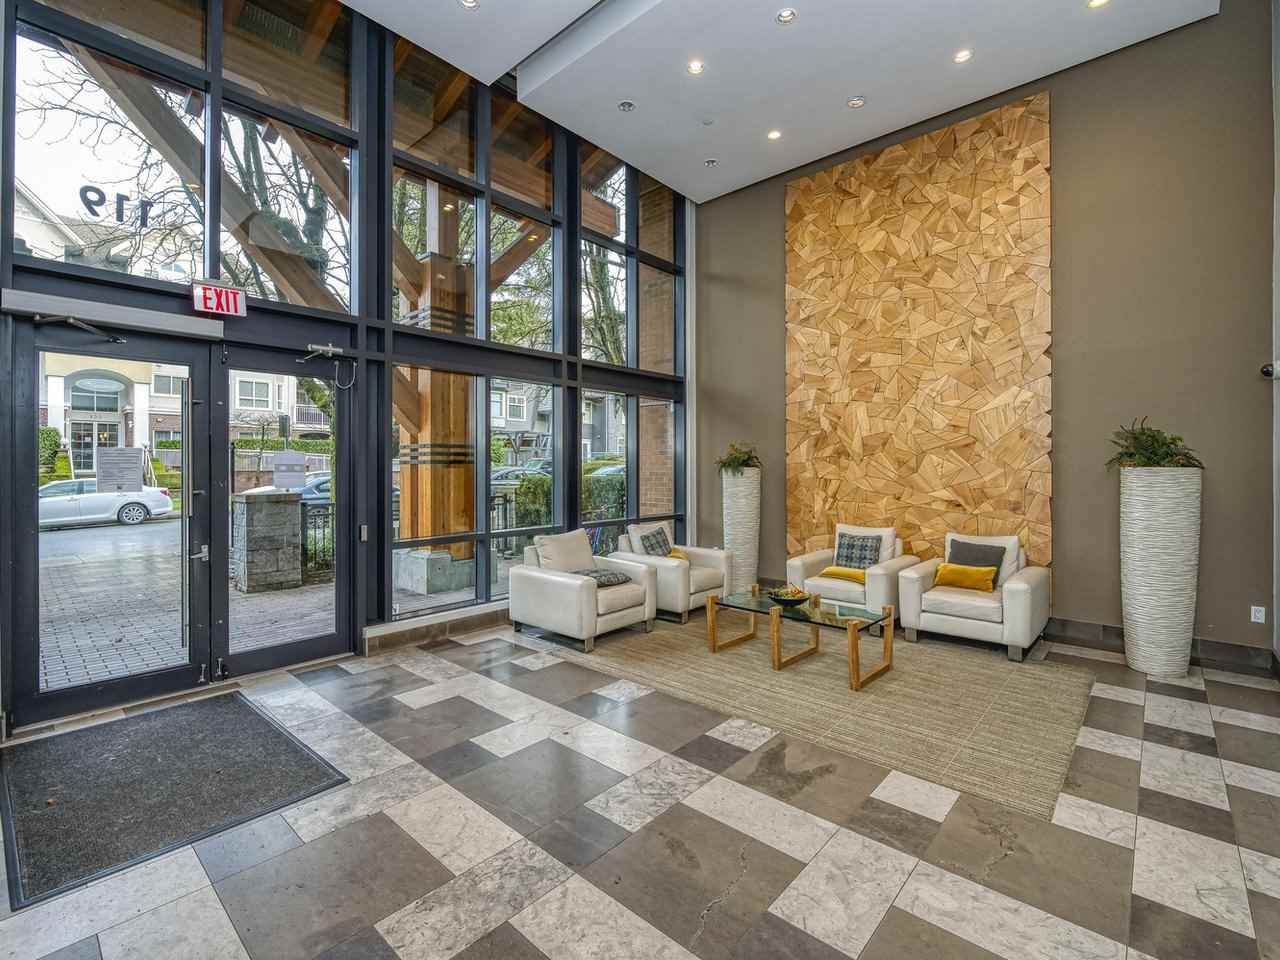 Listing Image of 104 119 W 22ND STREET